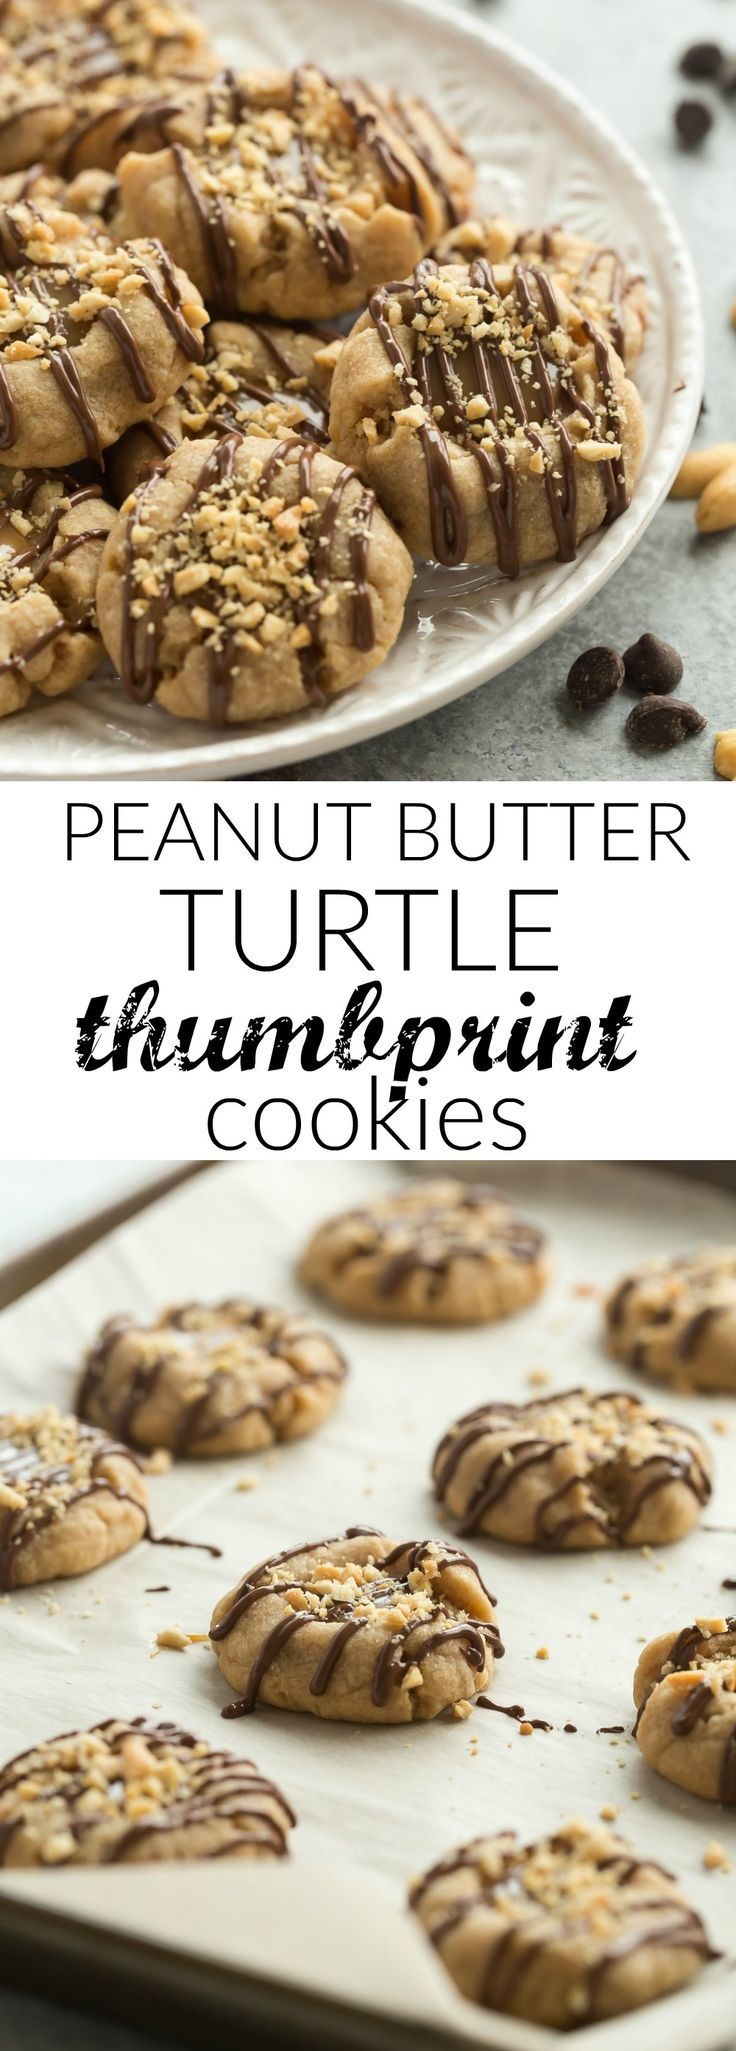 These Peanut Butter Turtle Thumbprint Cookies are a new twist on a classic Christmas cookie -- with a peanut butter cookie base, a simple caramel filling, a drizzle of chocolate and a sprinkling of peanuts, they're sure to be a new holiday tradition! Plus a recipe video.